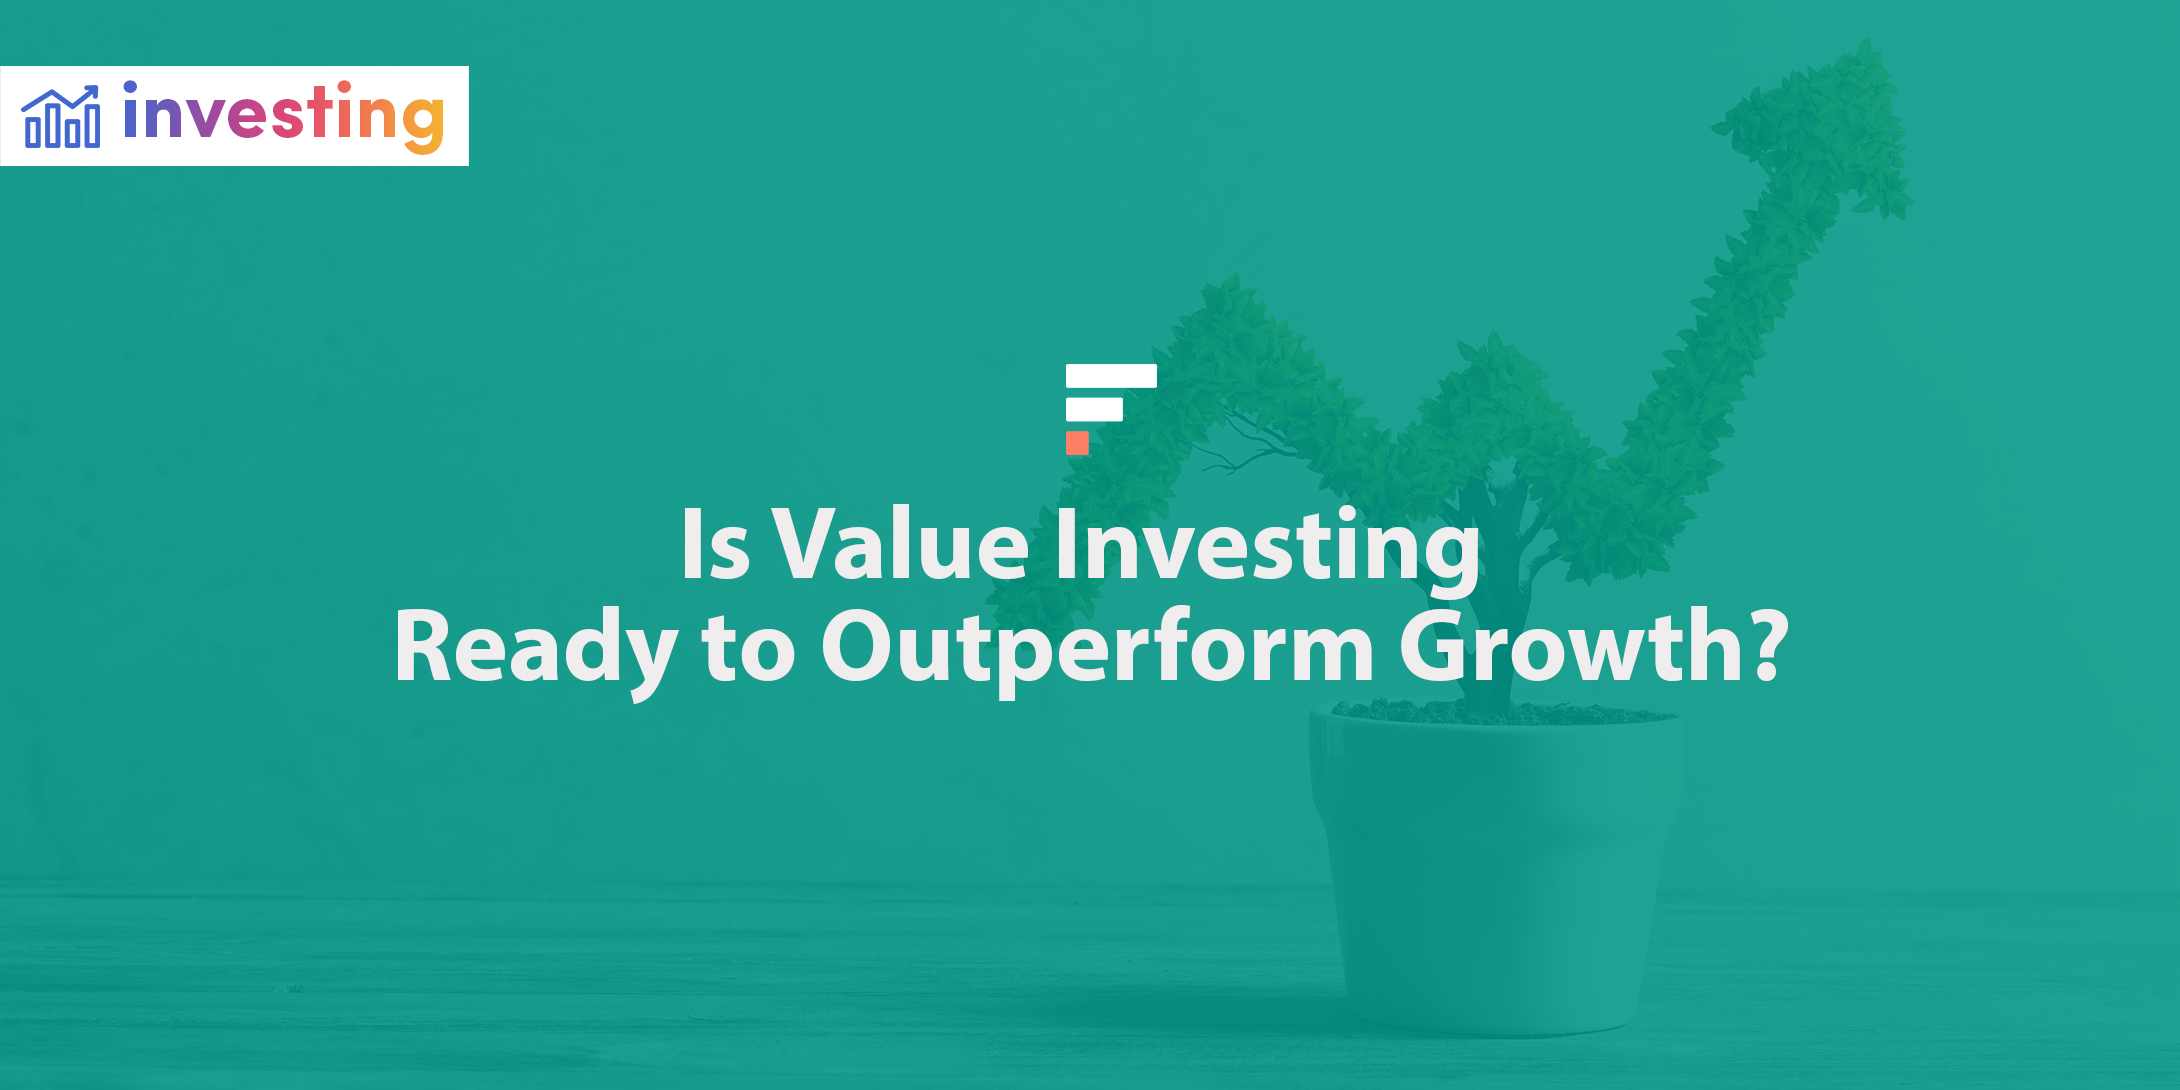 Is value investing ready to outperform growth?